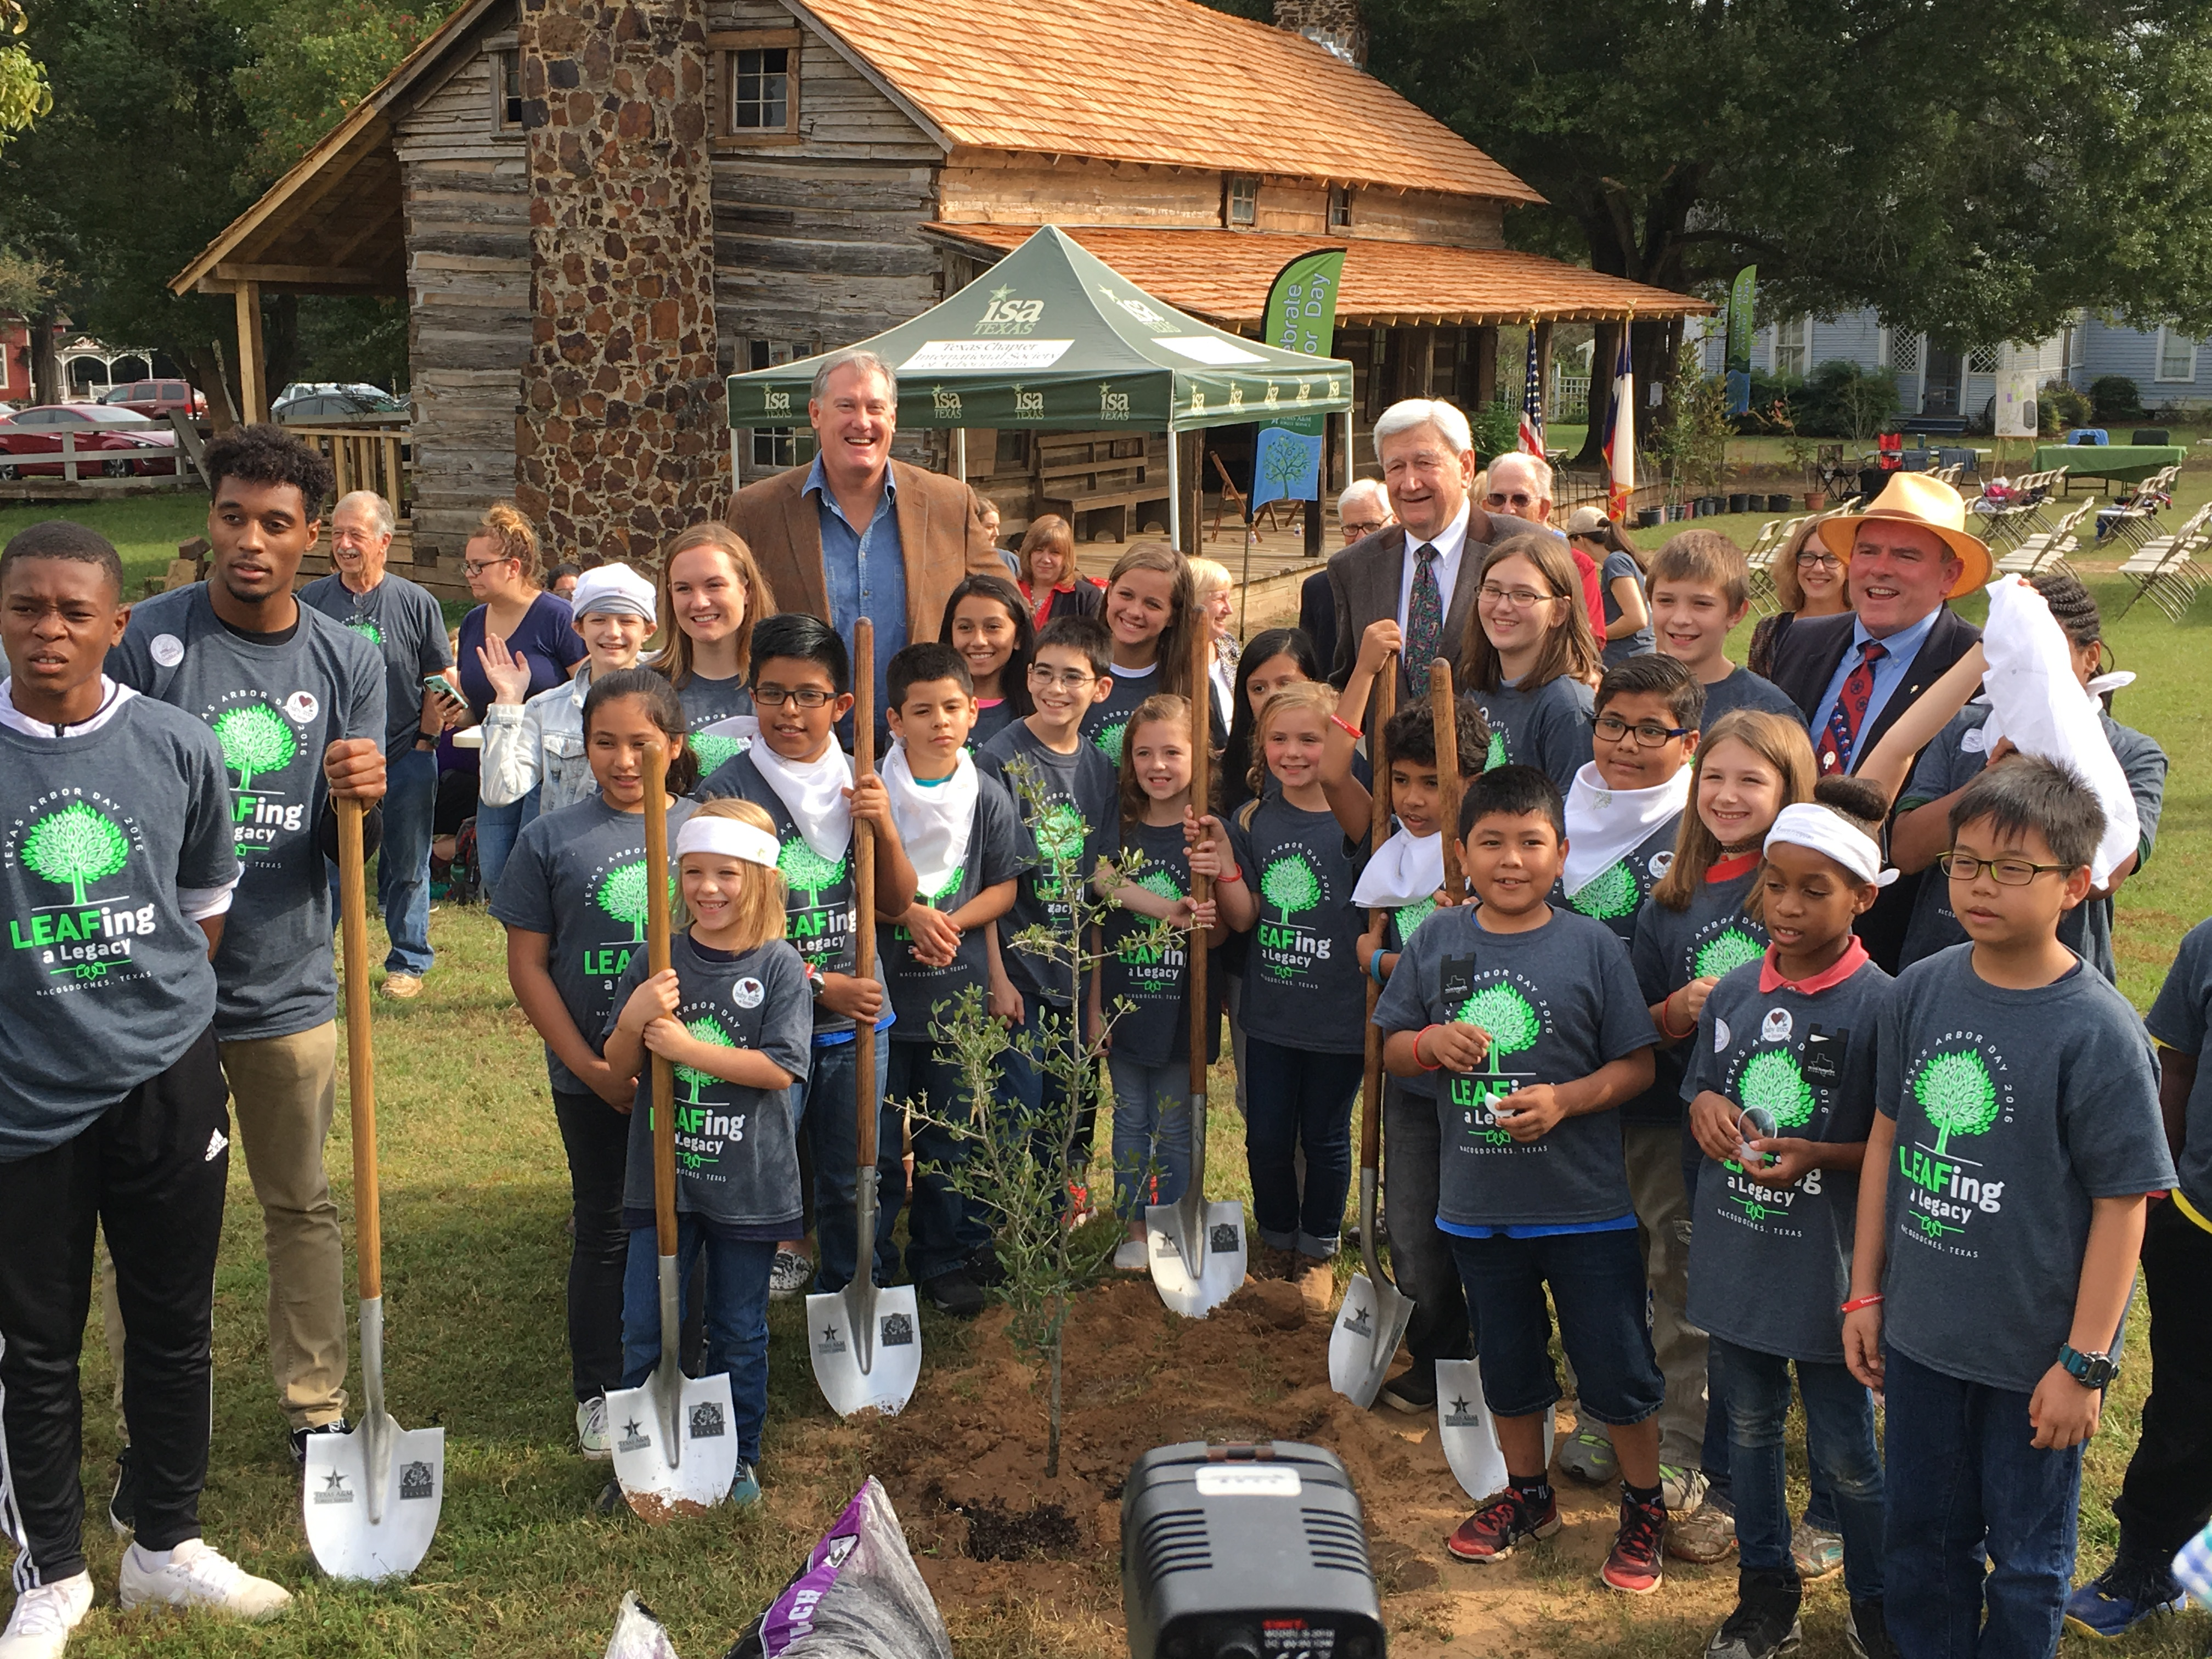 Texans celebrate Arbor Day in 'The Oldest Town in Texas""